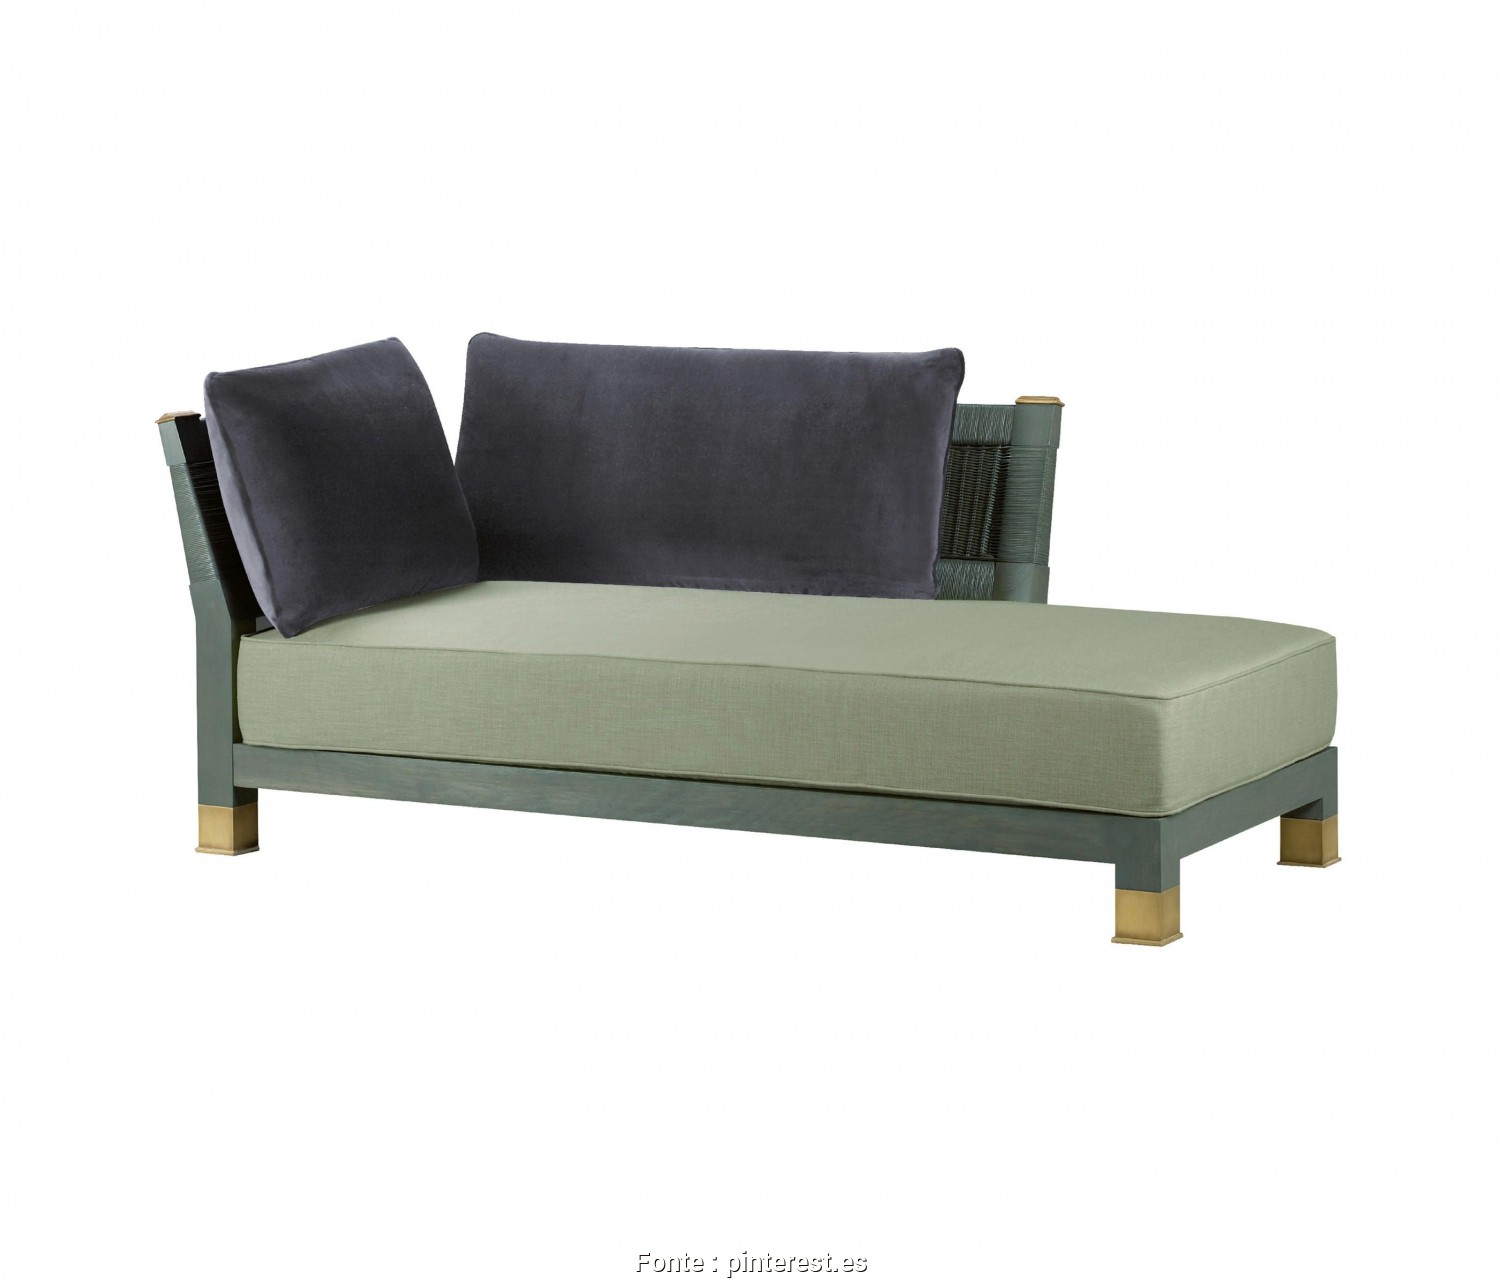 Arild Dormeuse Ikea, Superiore Moltrasio Chaise Longue By Promemoria, Garden Sofas, Seating